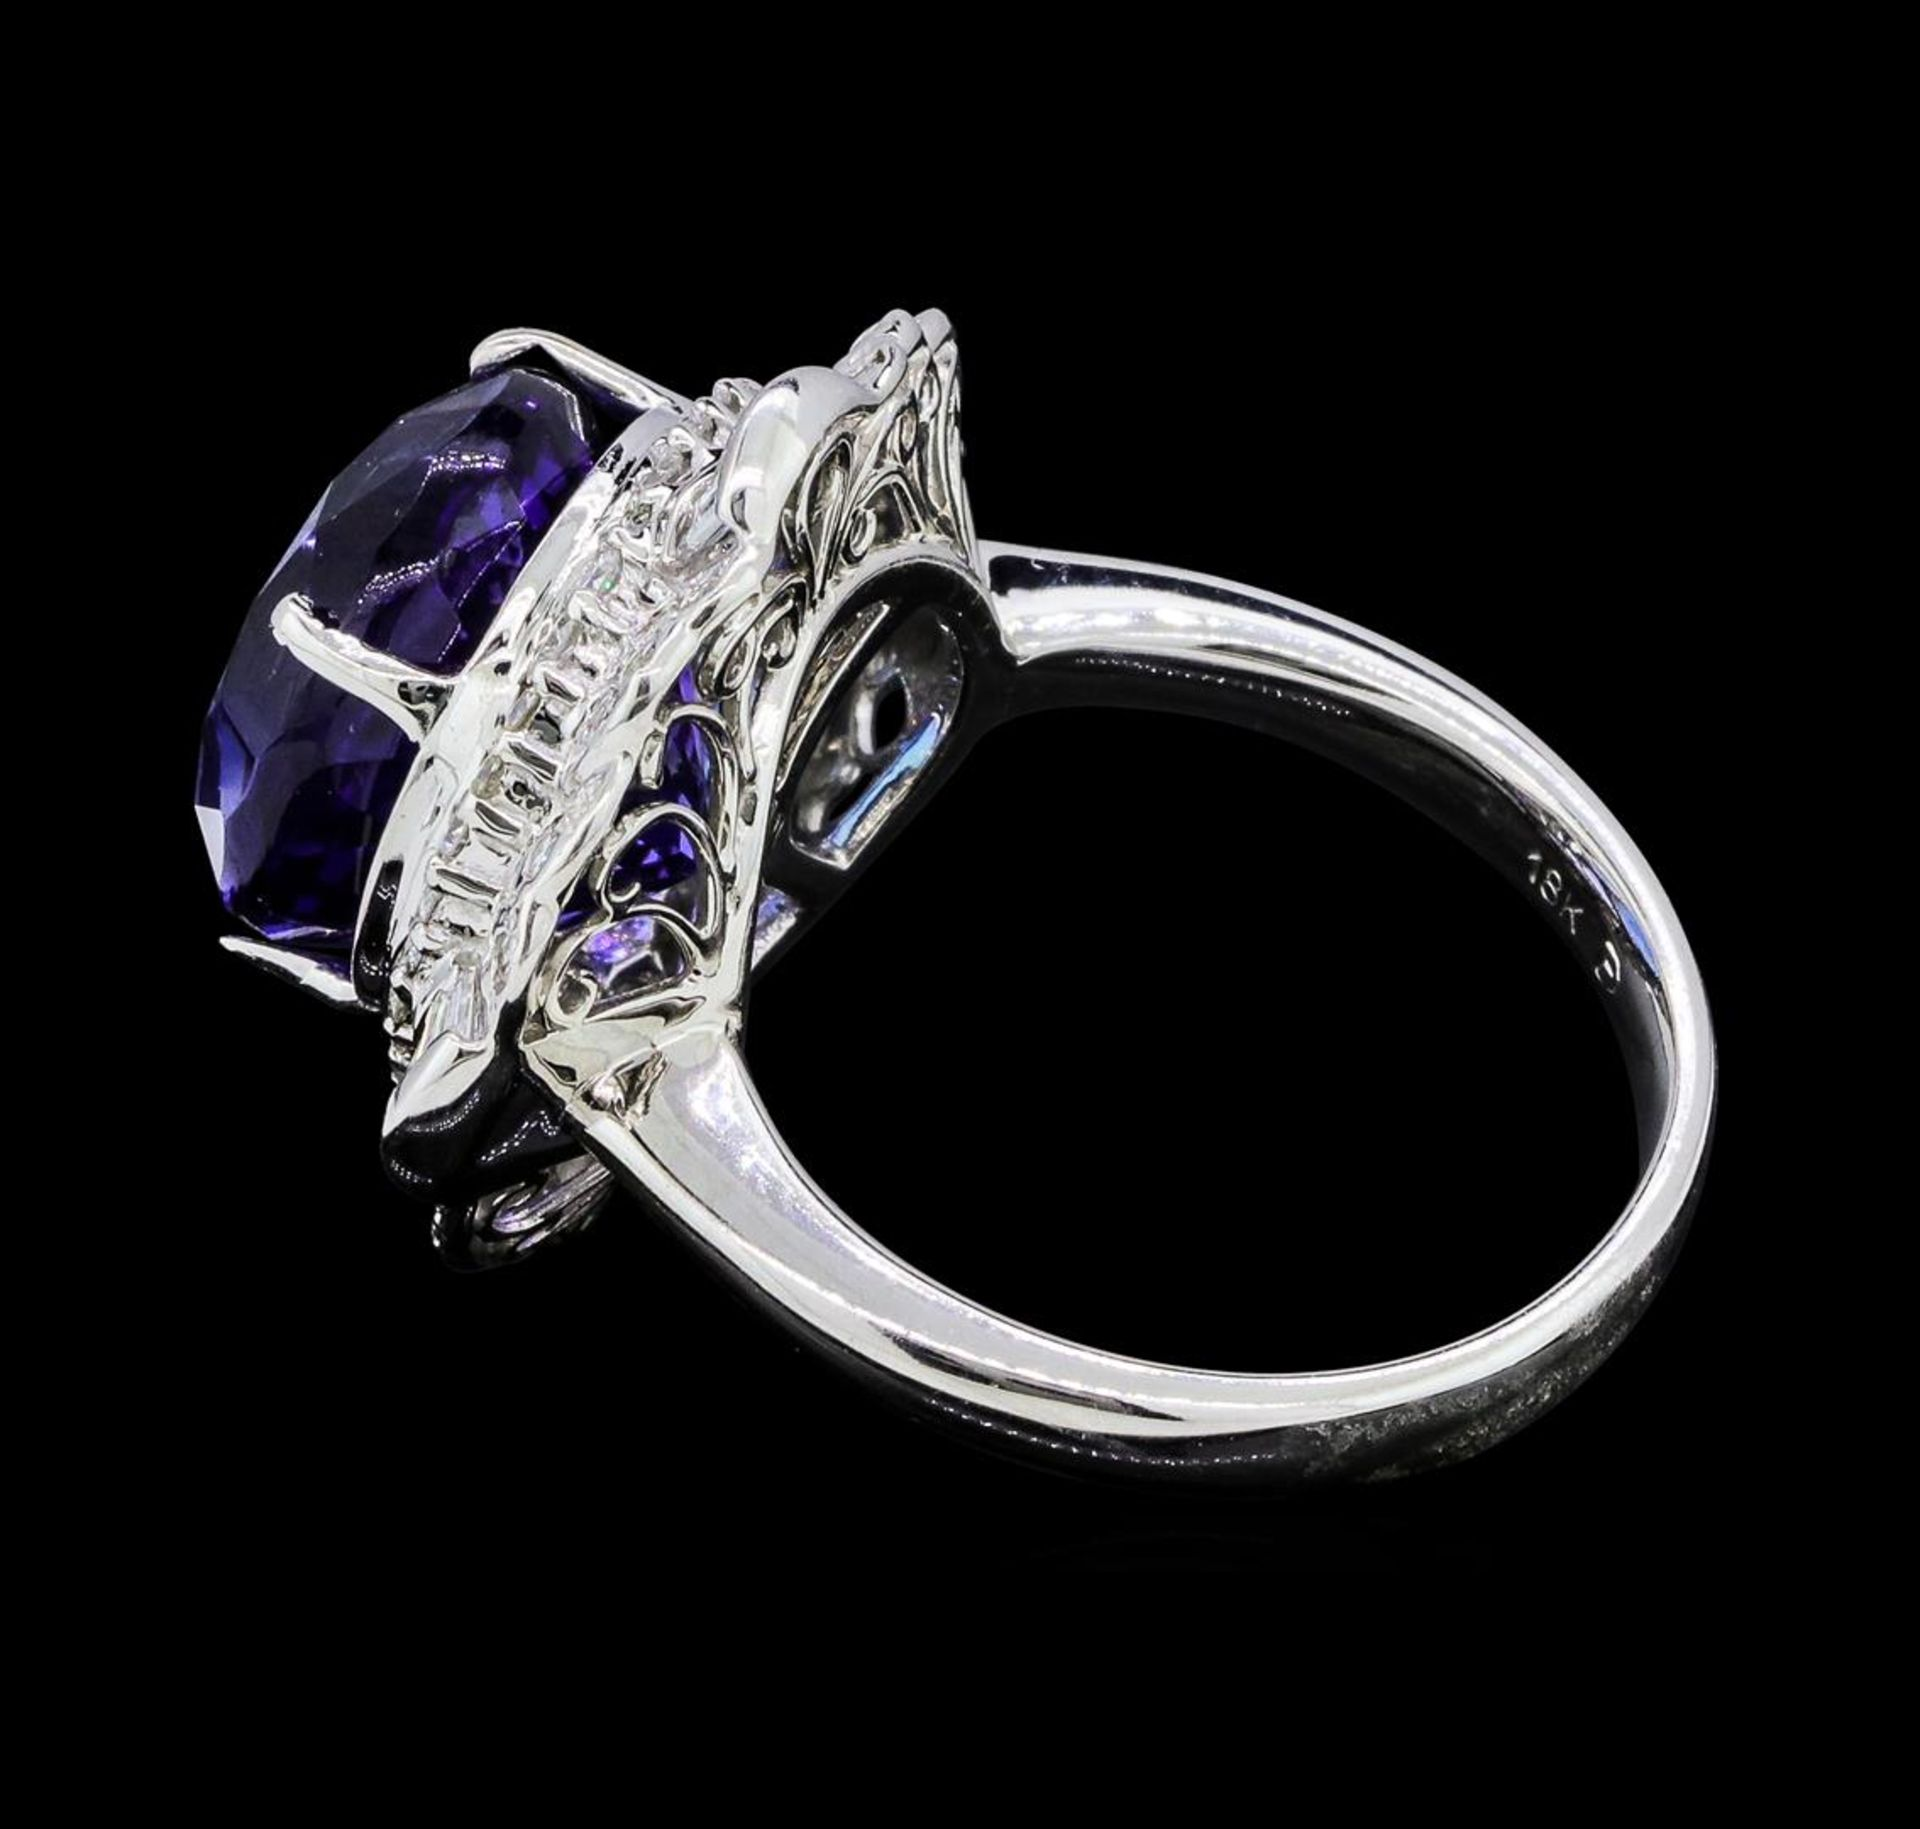 14.11 ctw Round Brilliant Tanzanite And Baguette Cut (Tapered) Diamond Ring - 18 - Image 3 of 5